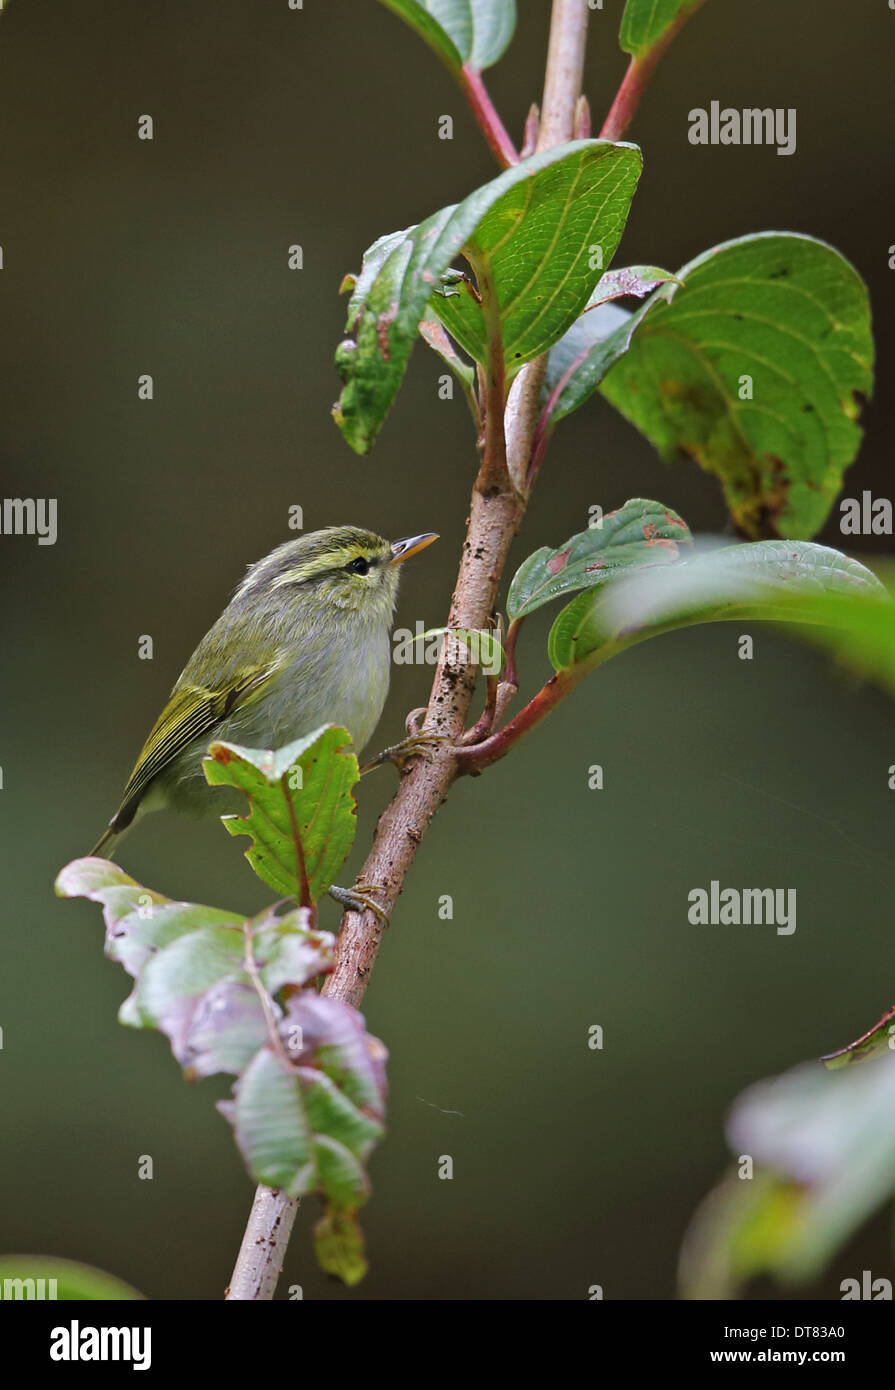 White-tailed Leaf-warbler (Phylloscopus davisoni davisoni) adult perched on twig Doi Inthanon N.P. Chiang Mai Province Stock Photo